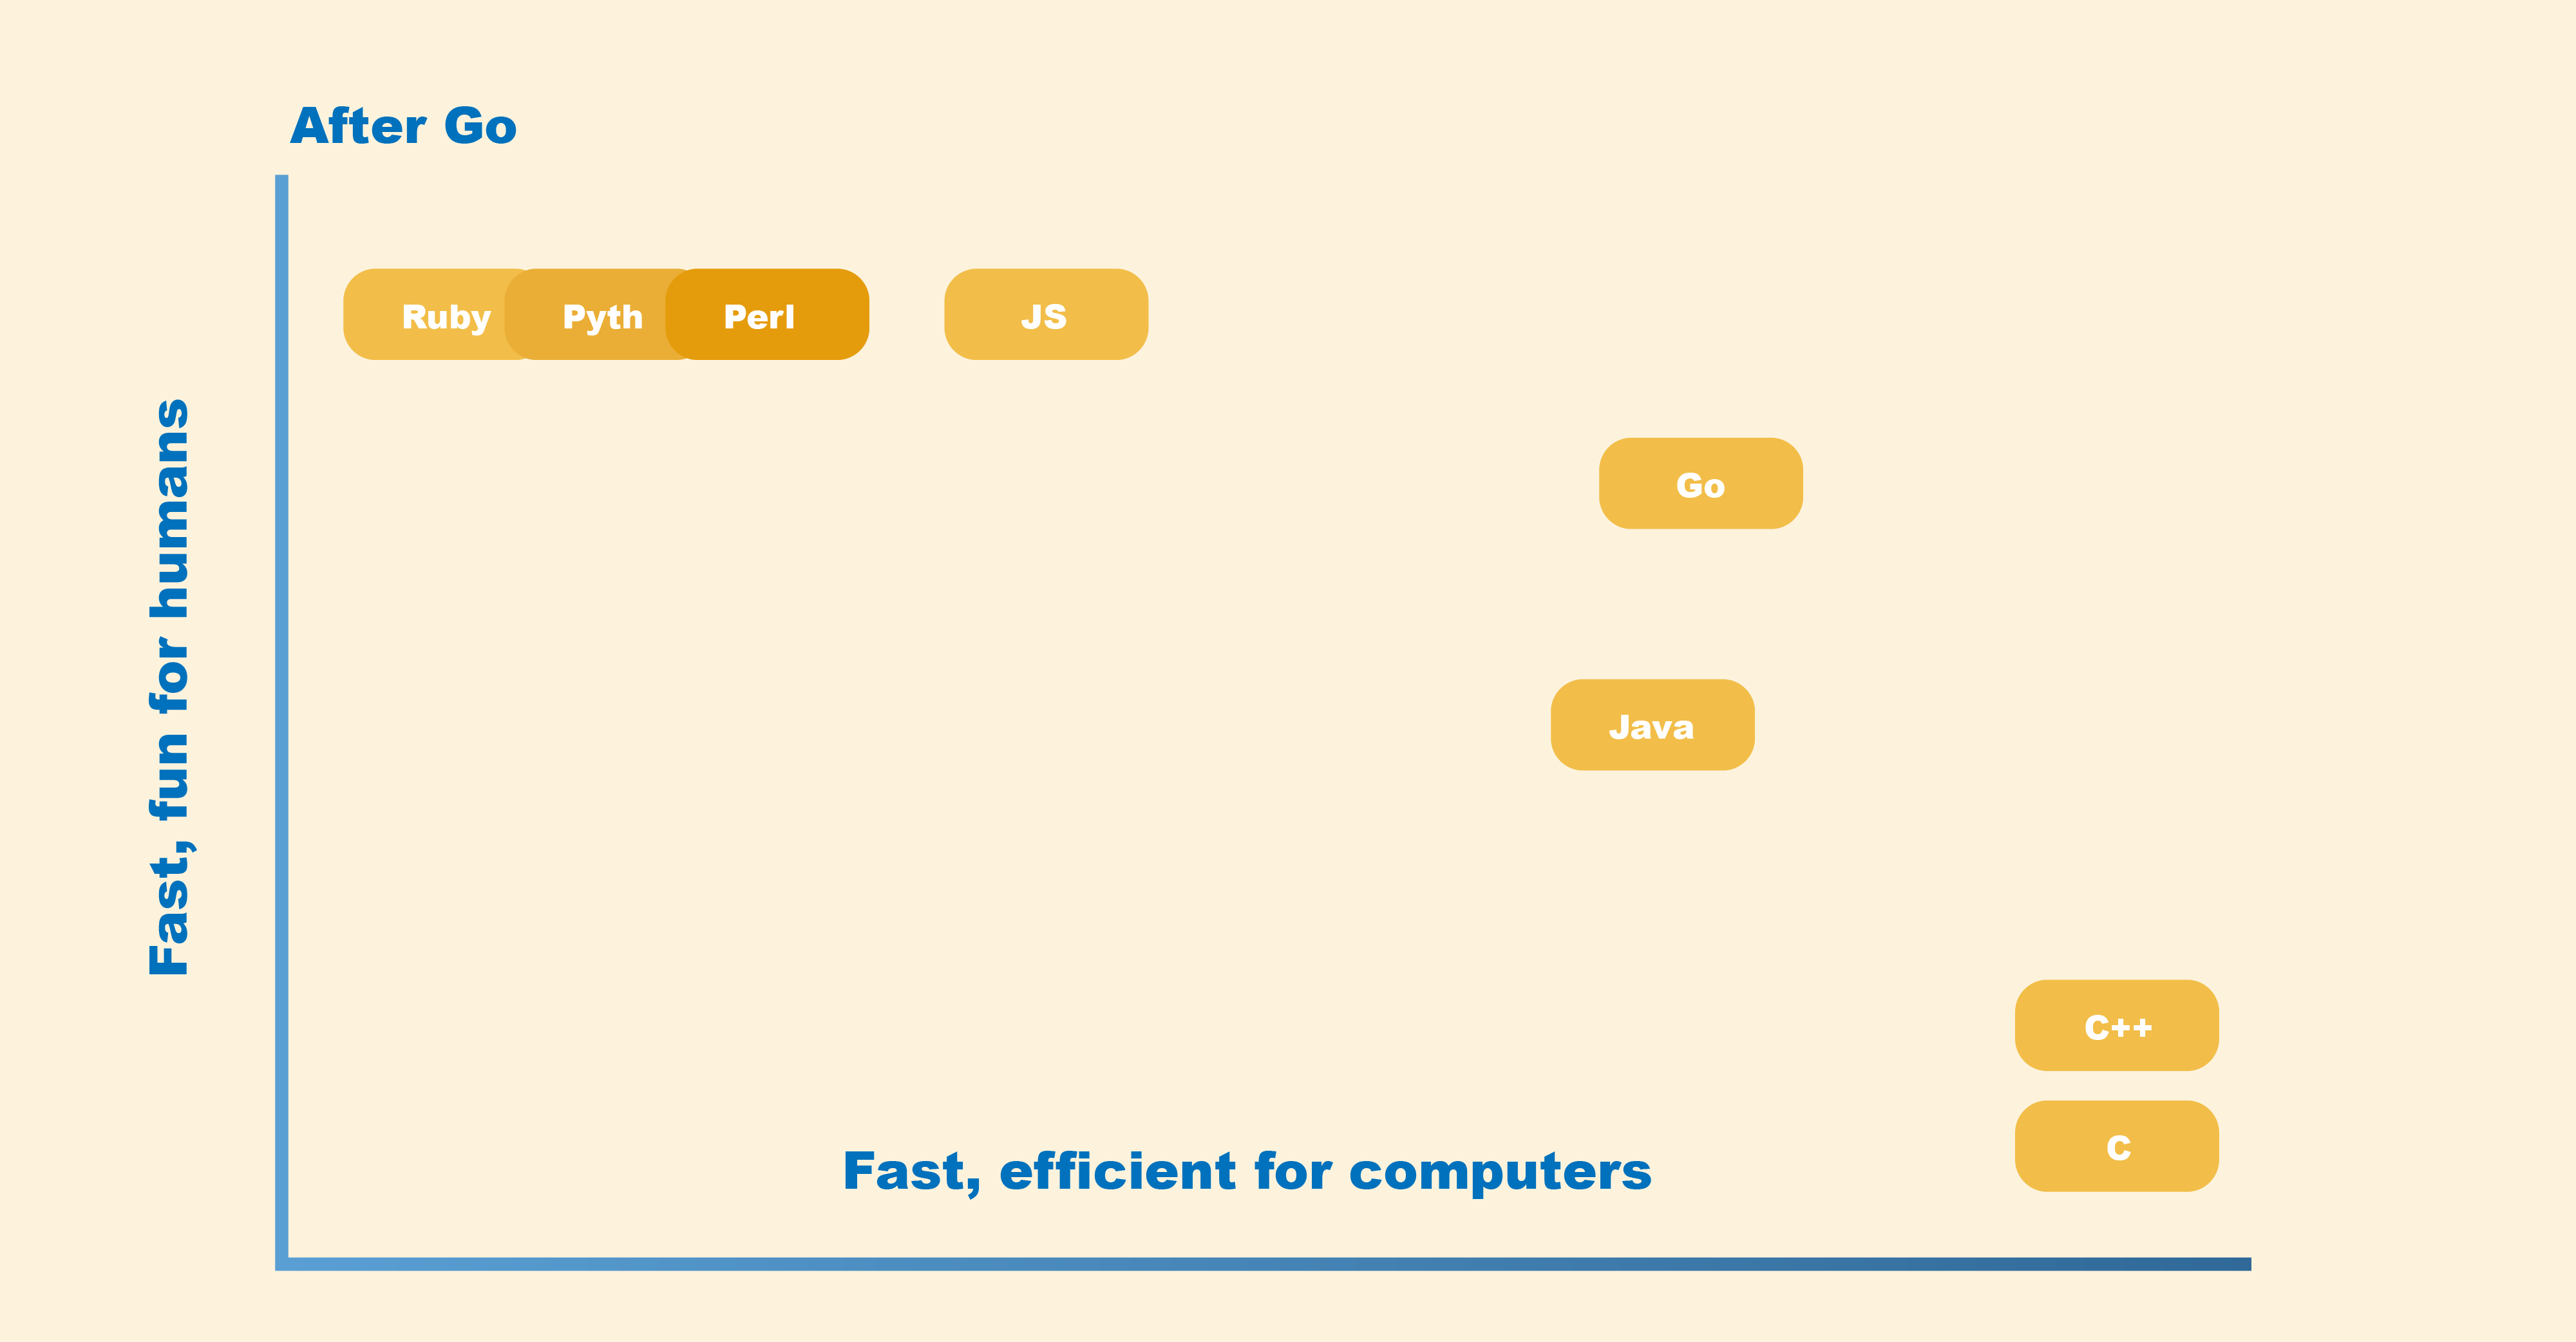 Performance of different programming languages